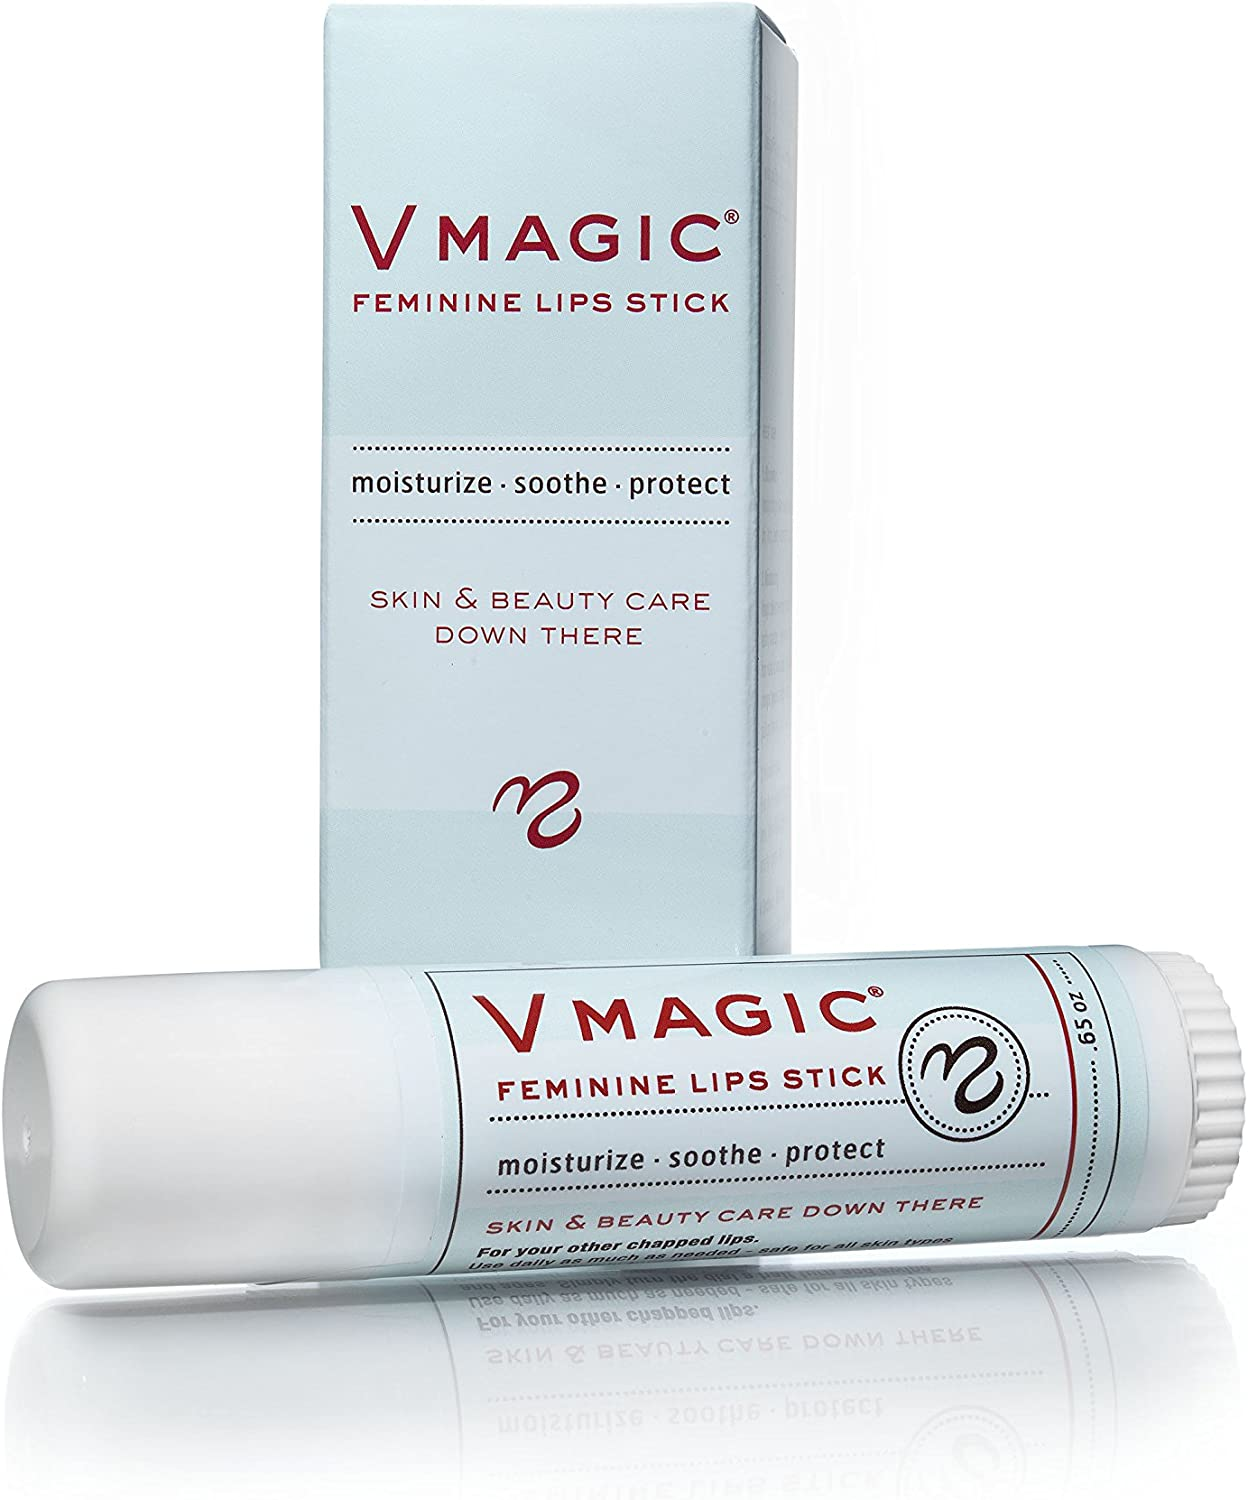 Vmagic Organic Vulva Balm & Intimate Skin Care, Vaginal Moisturizer & Personal Lubricant - Relieves Dryness, Itching, Burning, Redness, Chafing, Odor, Menopause Symptoms - Feminine Lips Stick (.65oz): Health & Personal Care